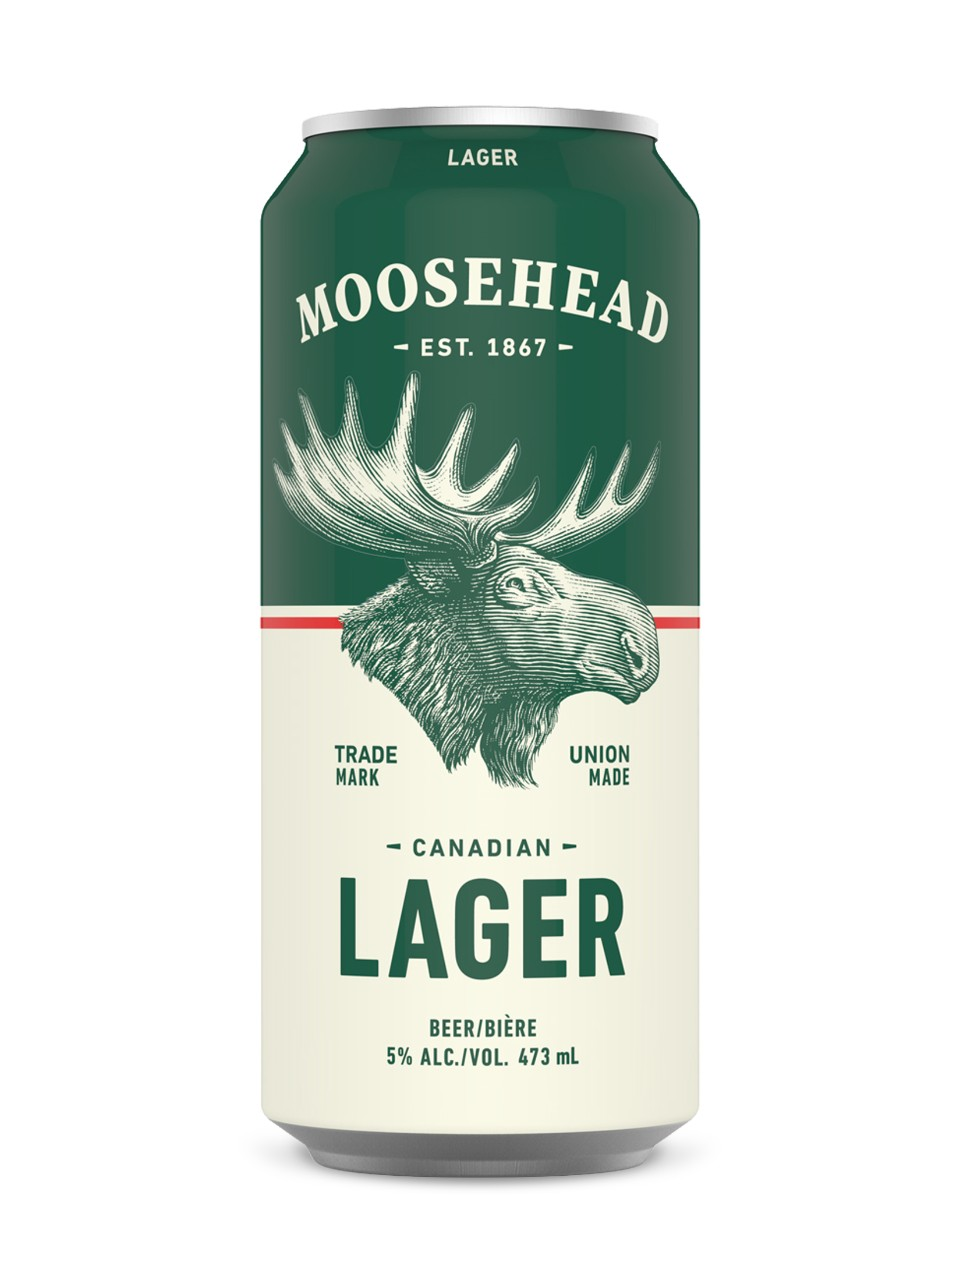 Moosehead Lager from LCBO